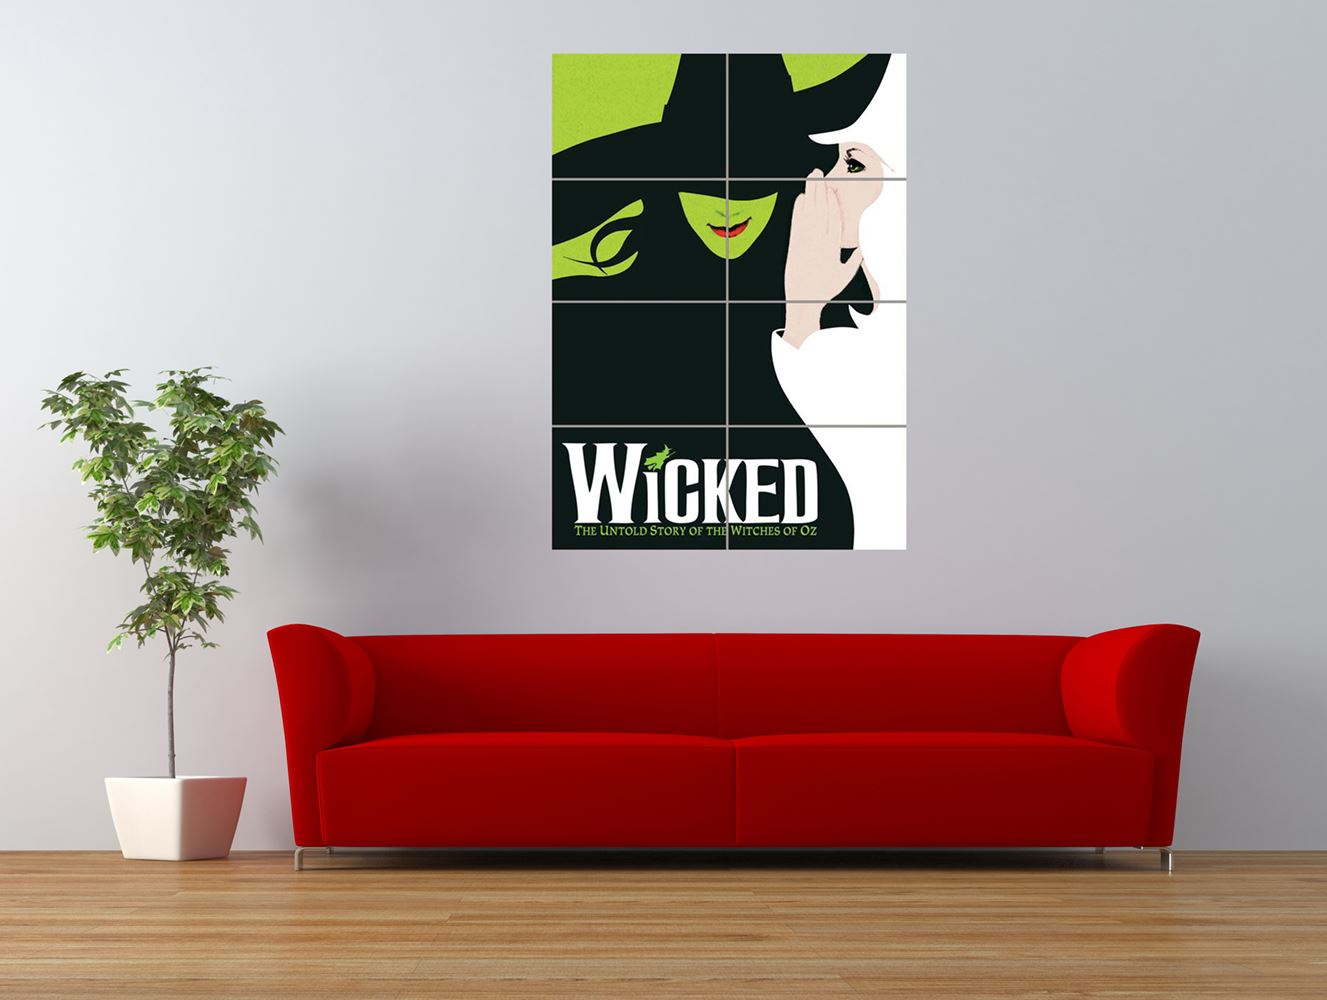 wicked broadway musical book oz witch giant art print panel poster nor0249 ebay. Black Bedroom Furniture Sets. Home Design Ideas